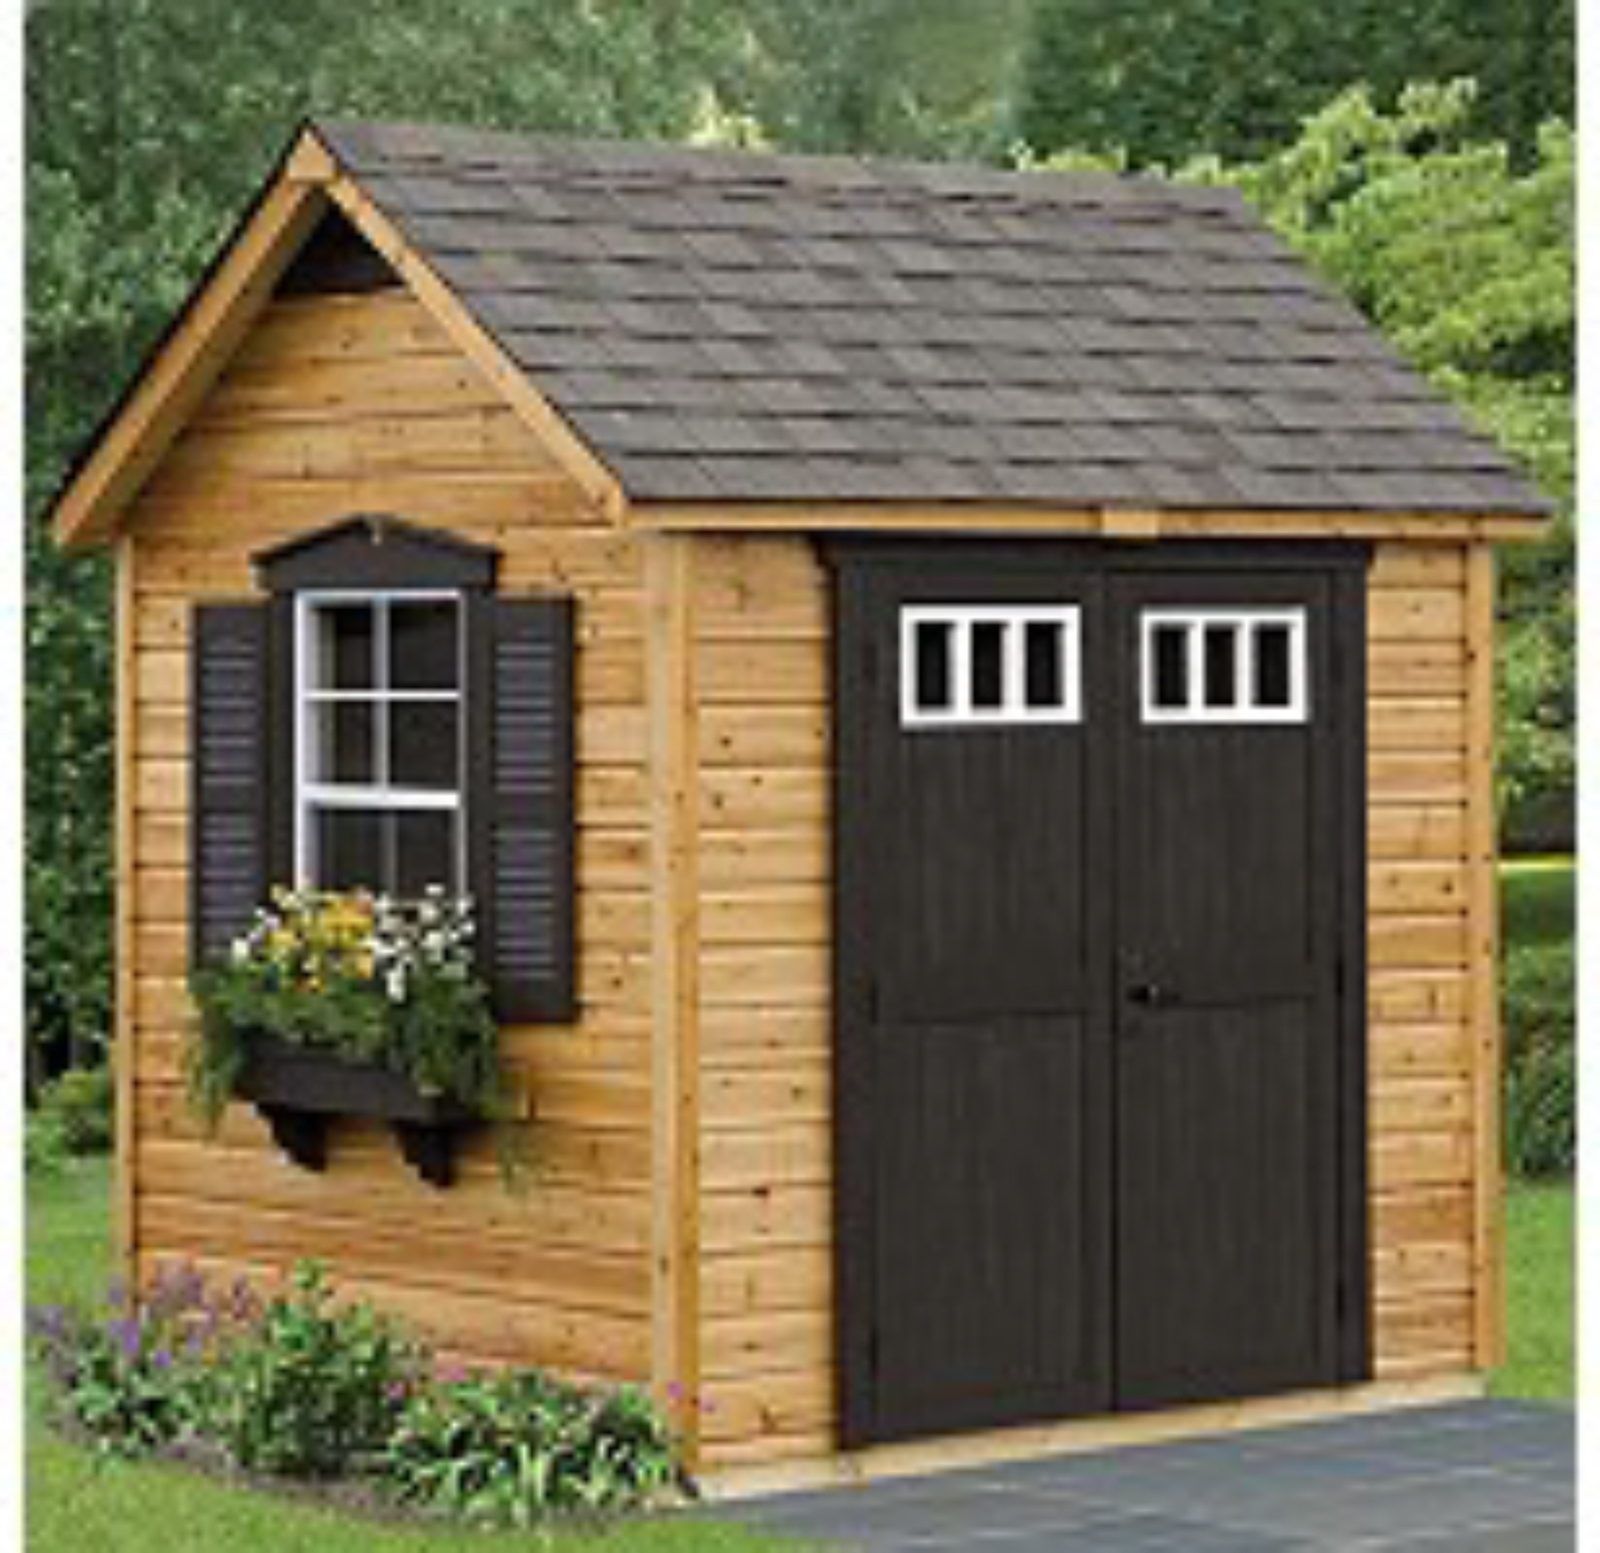 Suncast Legacy Garden Building,Outdoor Storage Shed,Wood Shed.Tool Shed, New